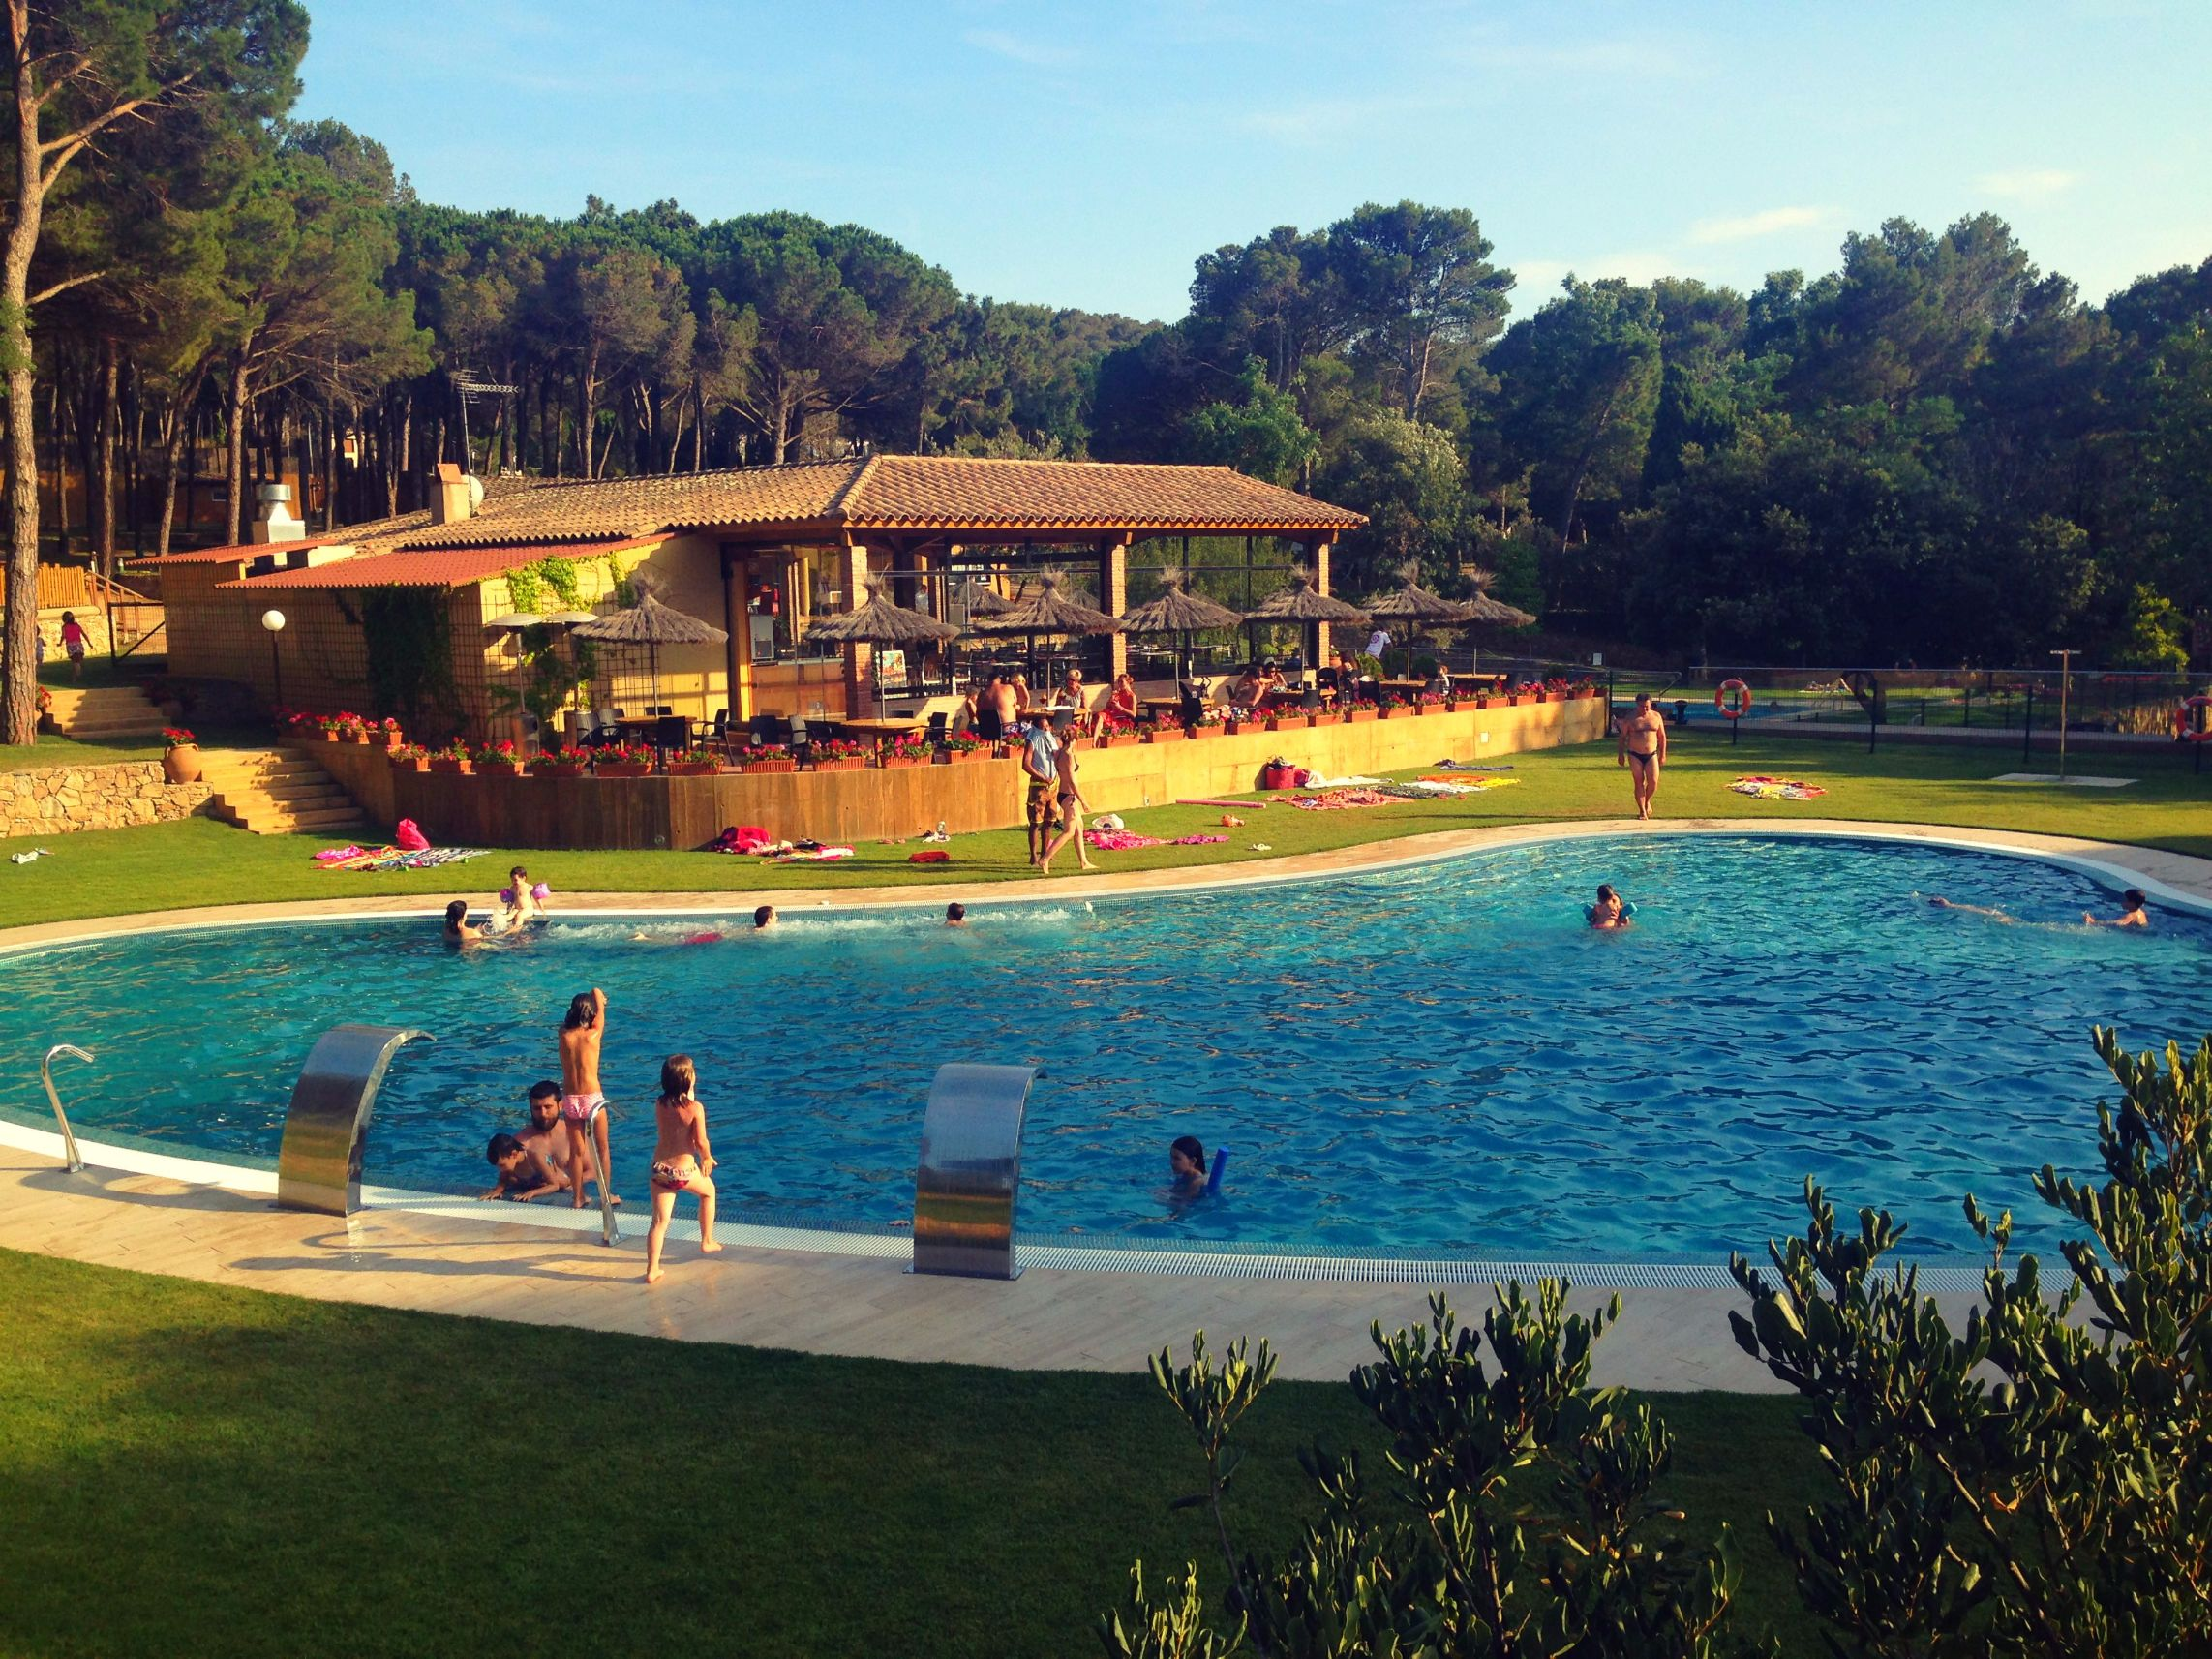 En holidays shared images guides spain costa brava jpg - Camping Begur One Of The Best Campsites On The Costa Brava